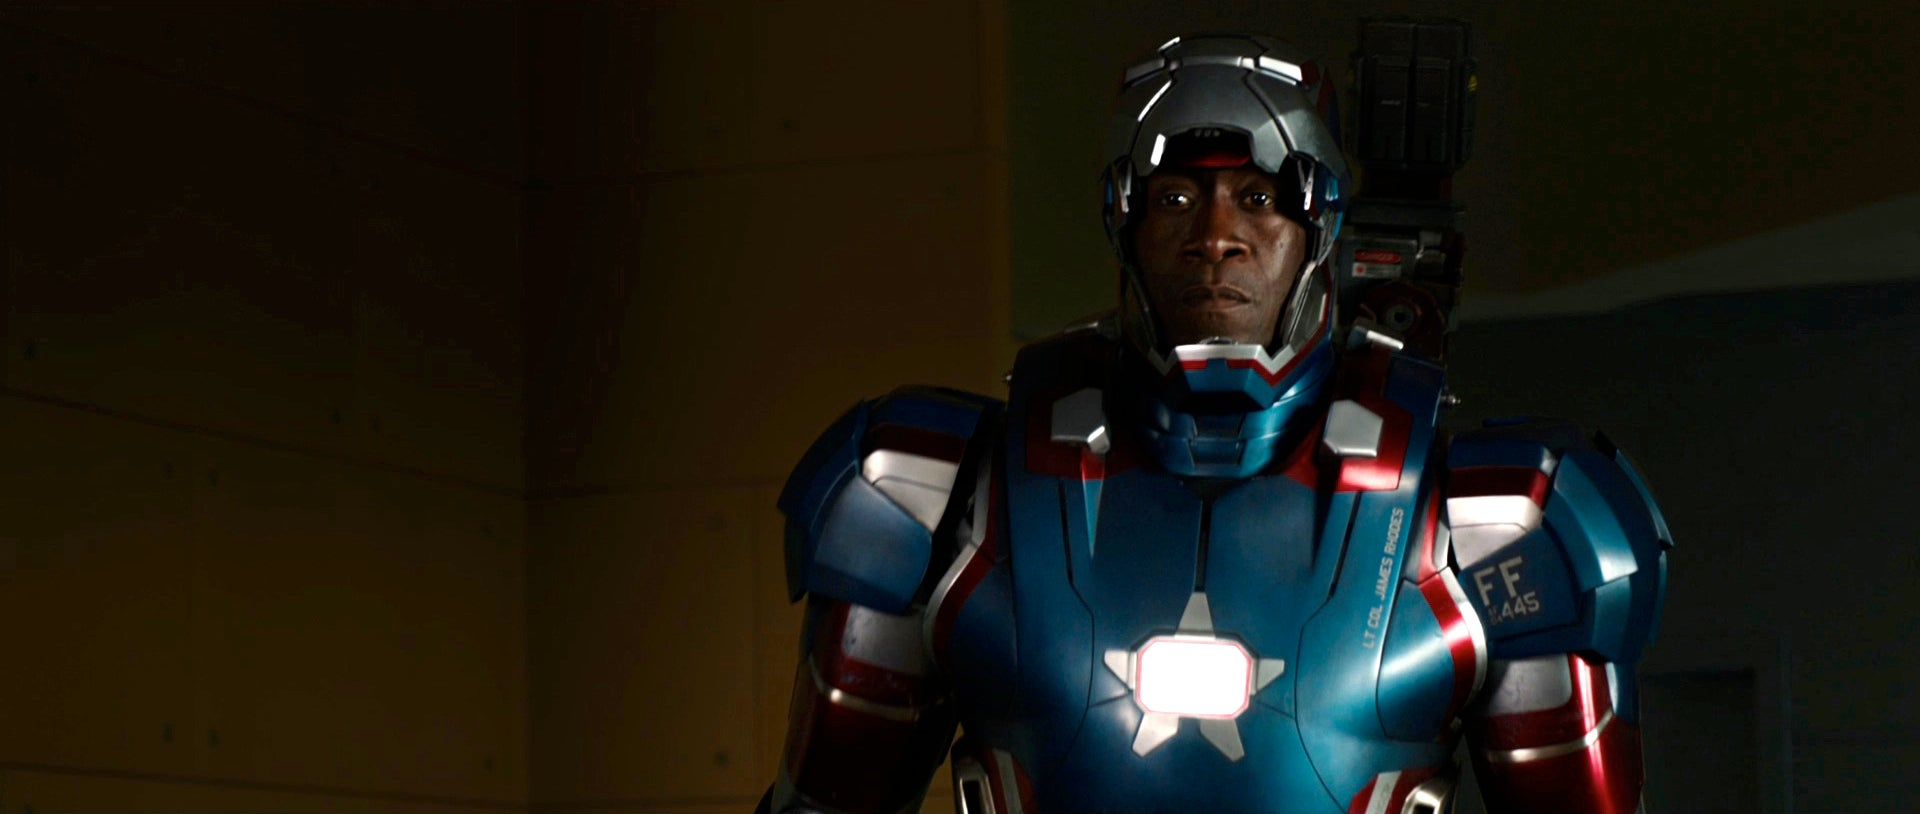 Avengers: Age of Ultron's Don Cheadle to Have